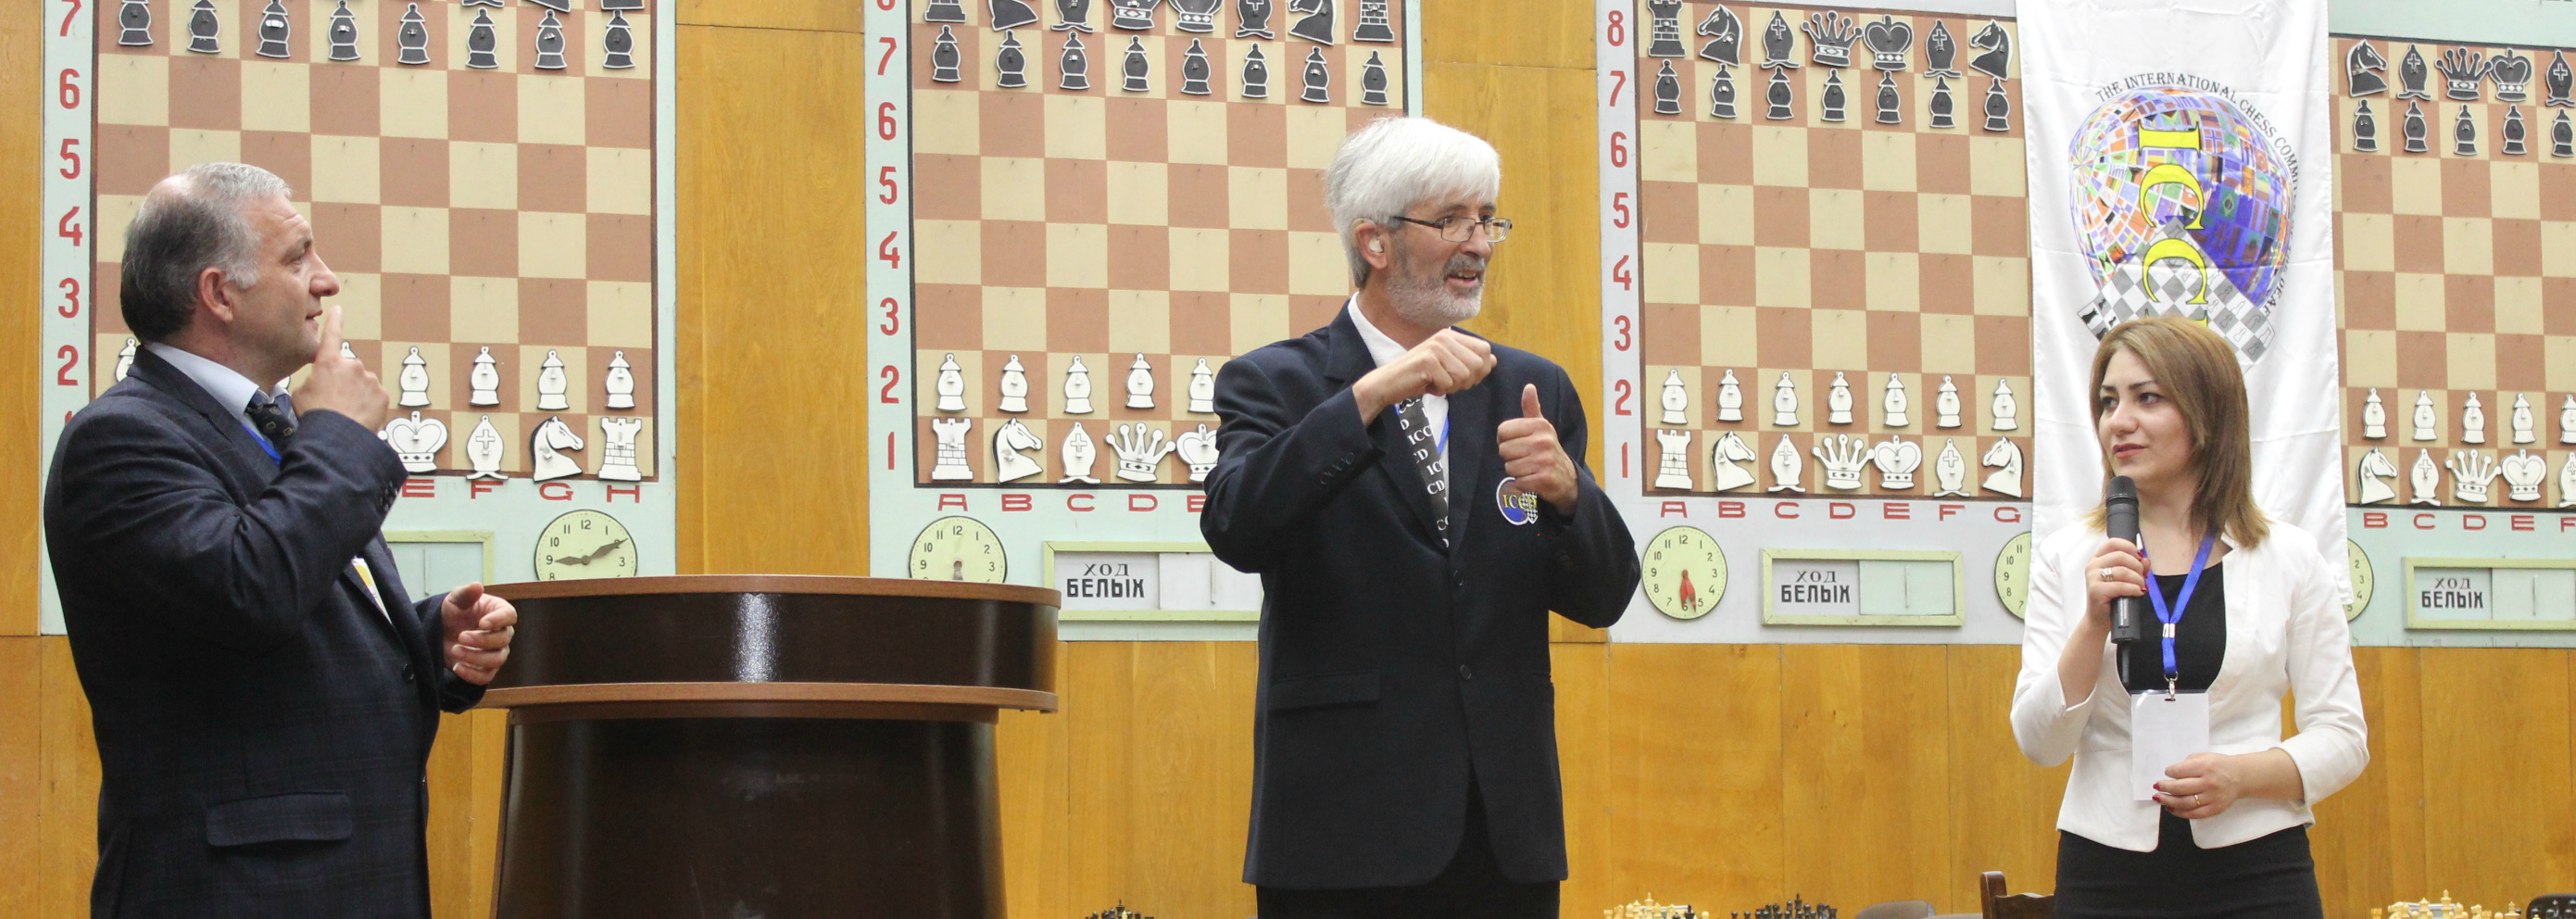 ICCD European Deaf Chess Championships